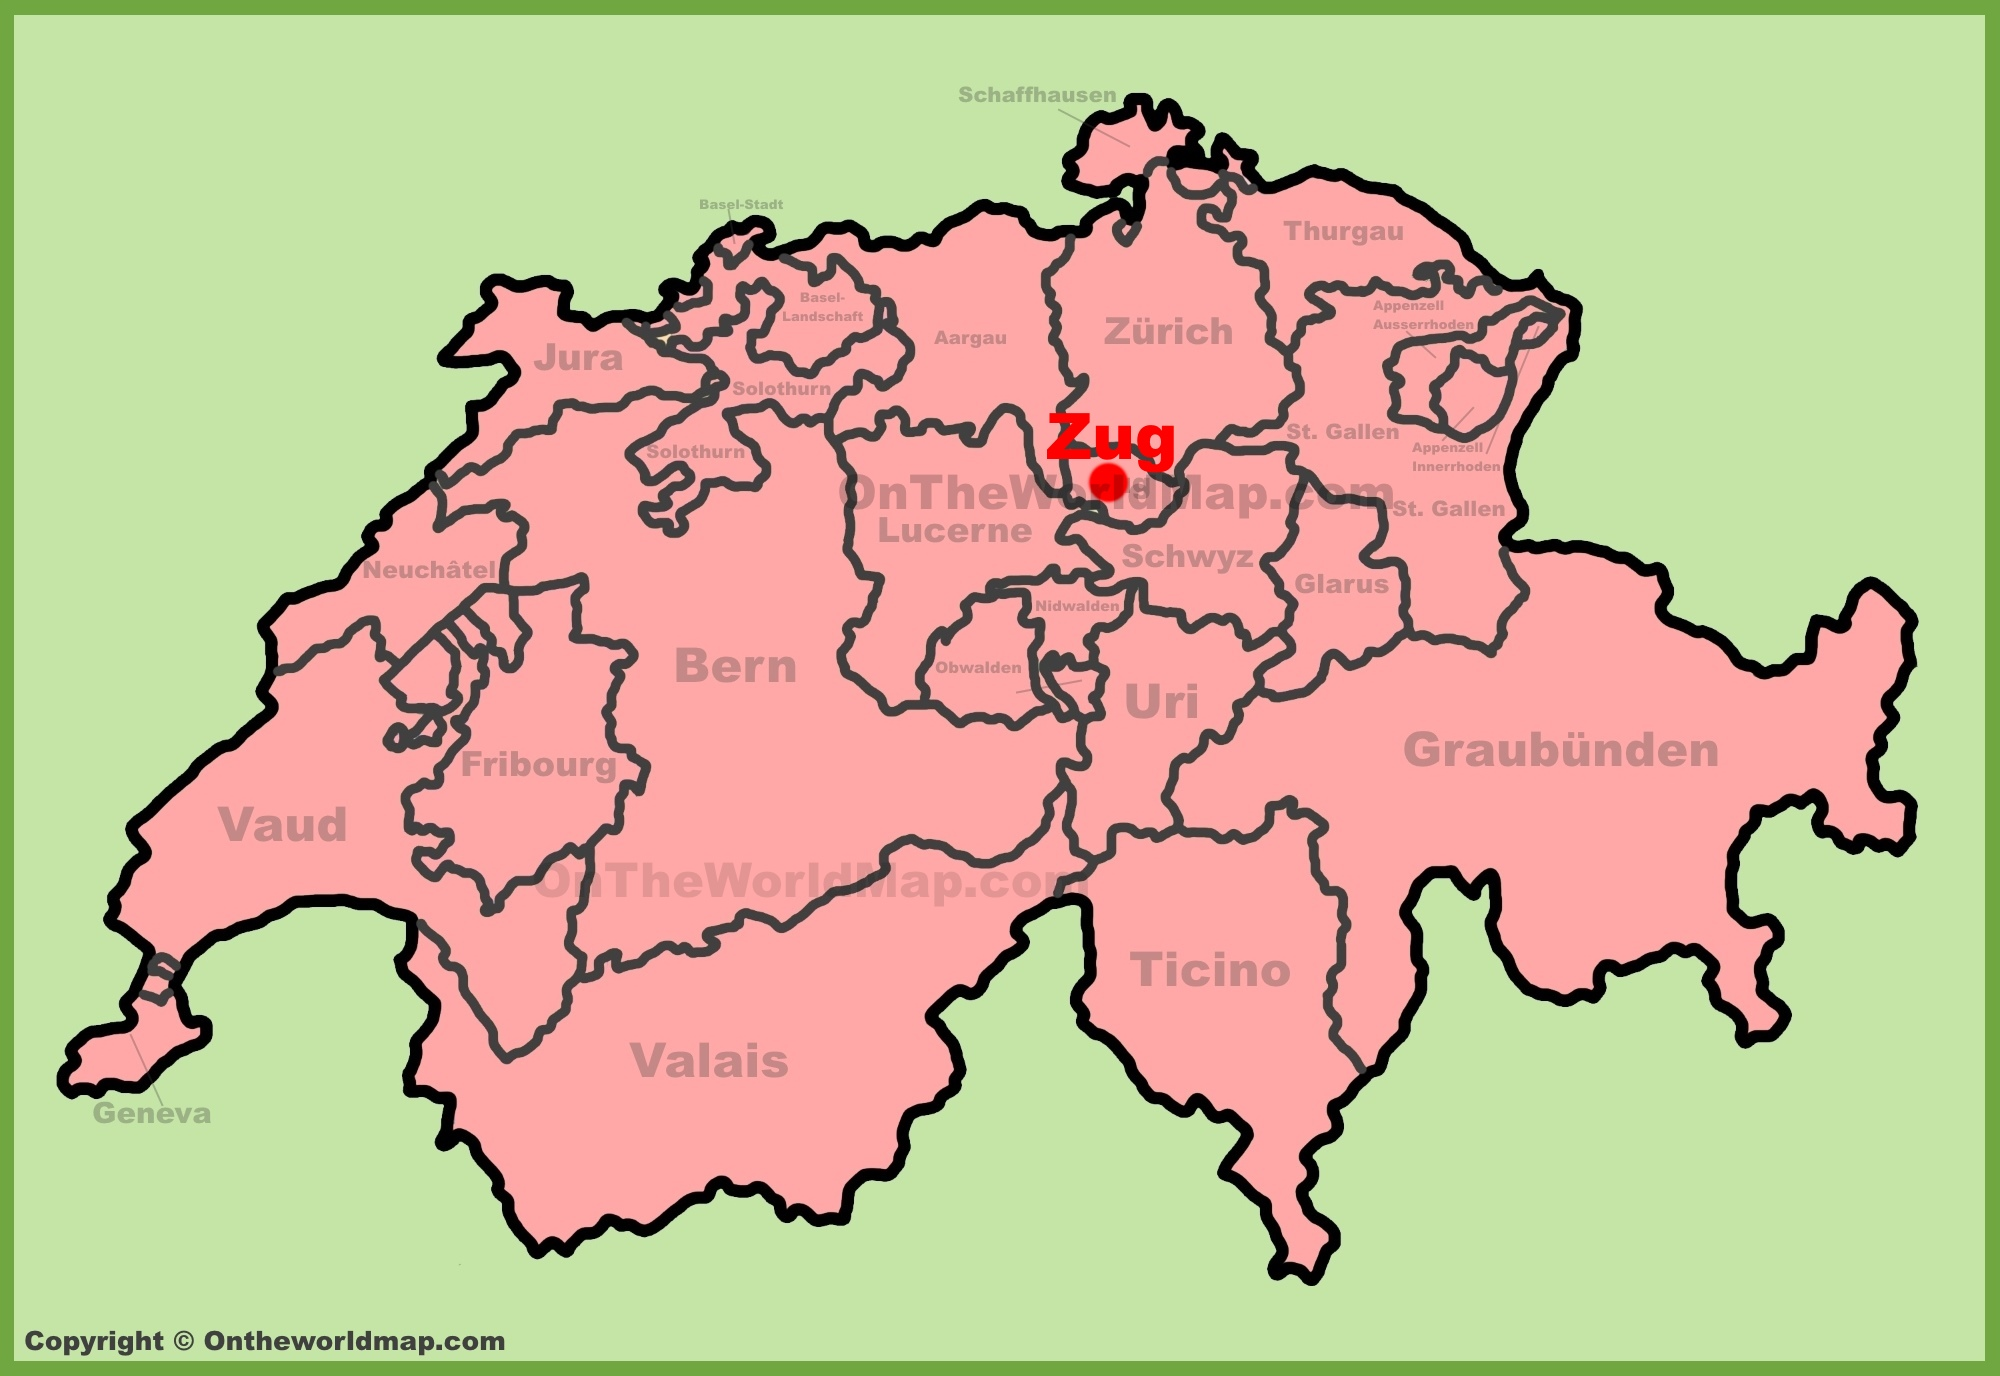 Zug location on the Switzerland map